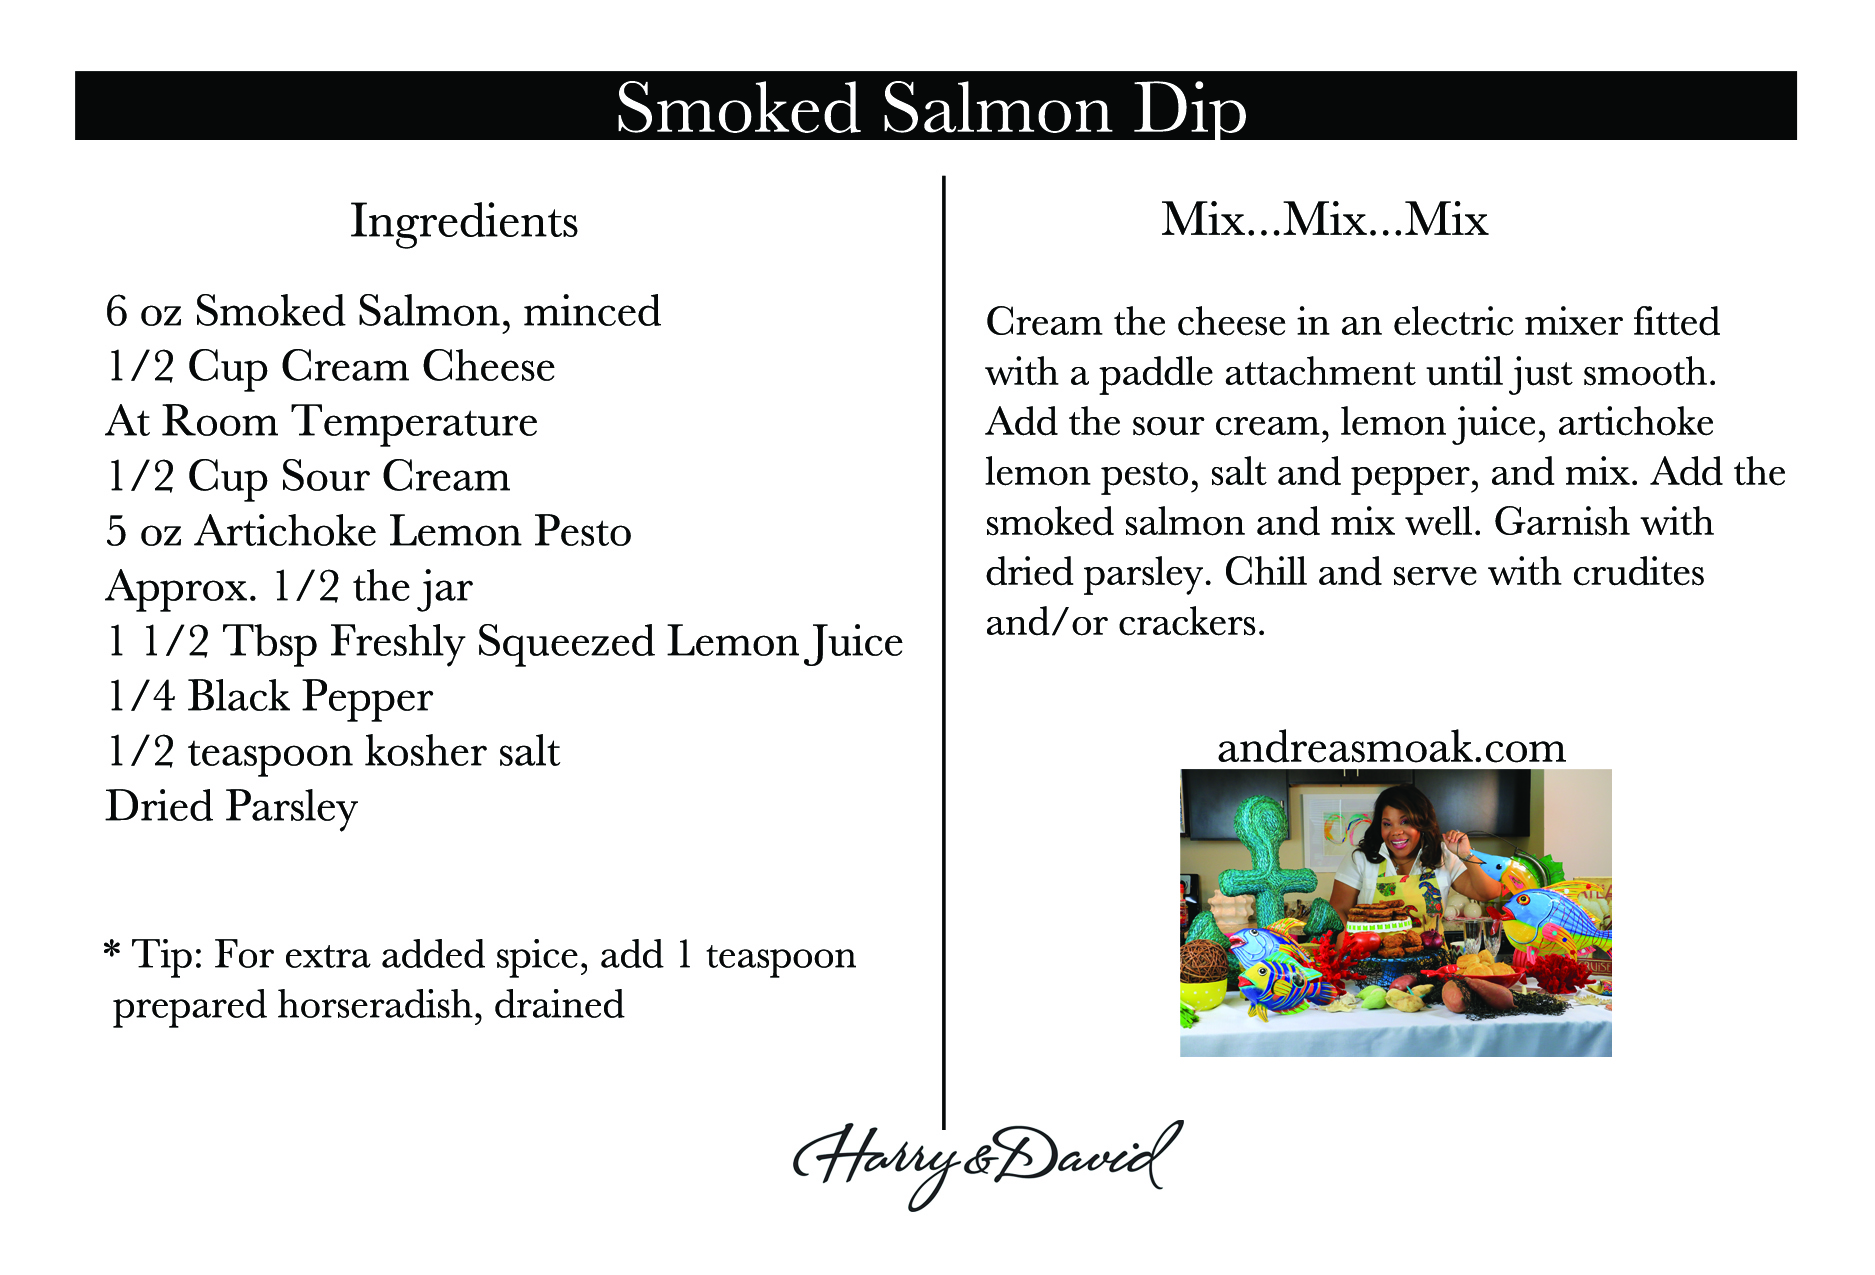 Smoked_Salmon_Dip_Card_Ingredients.jpg